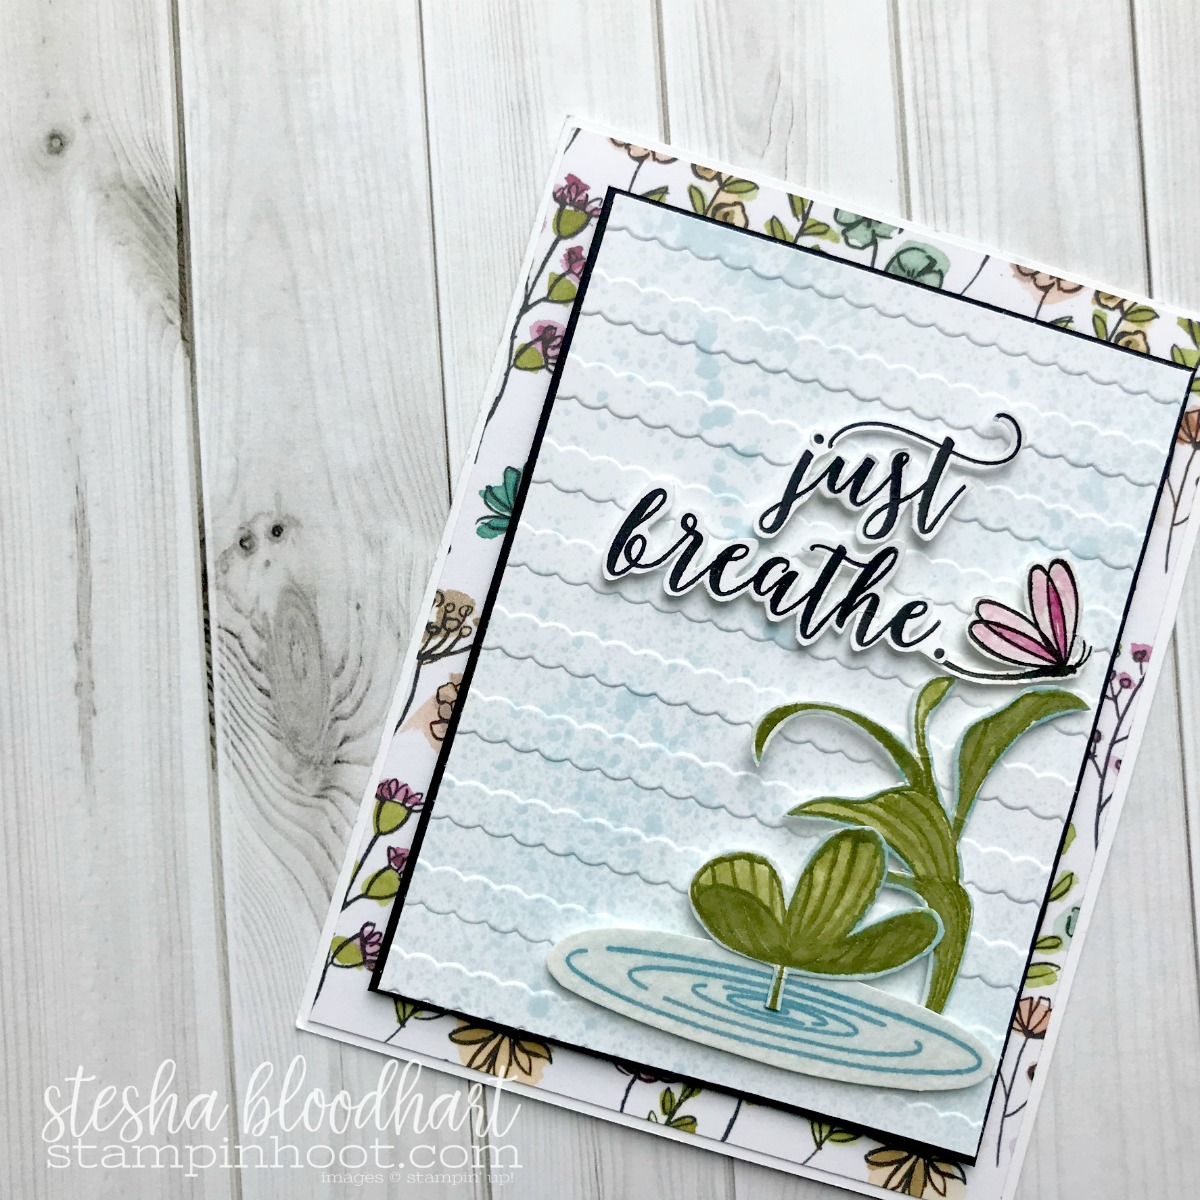 Peaceful Reflection Stamp Set by Stampin' Up! Sneak Peek 2018-2019 Annual Catalog #lakelife #justbreathe card by Stesha Bloodhart for #onstage2018 Milwaukee Display Board #steshabloodhart #stampinhoot #stampinup30